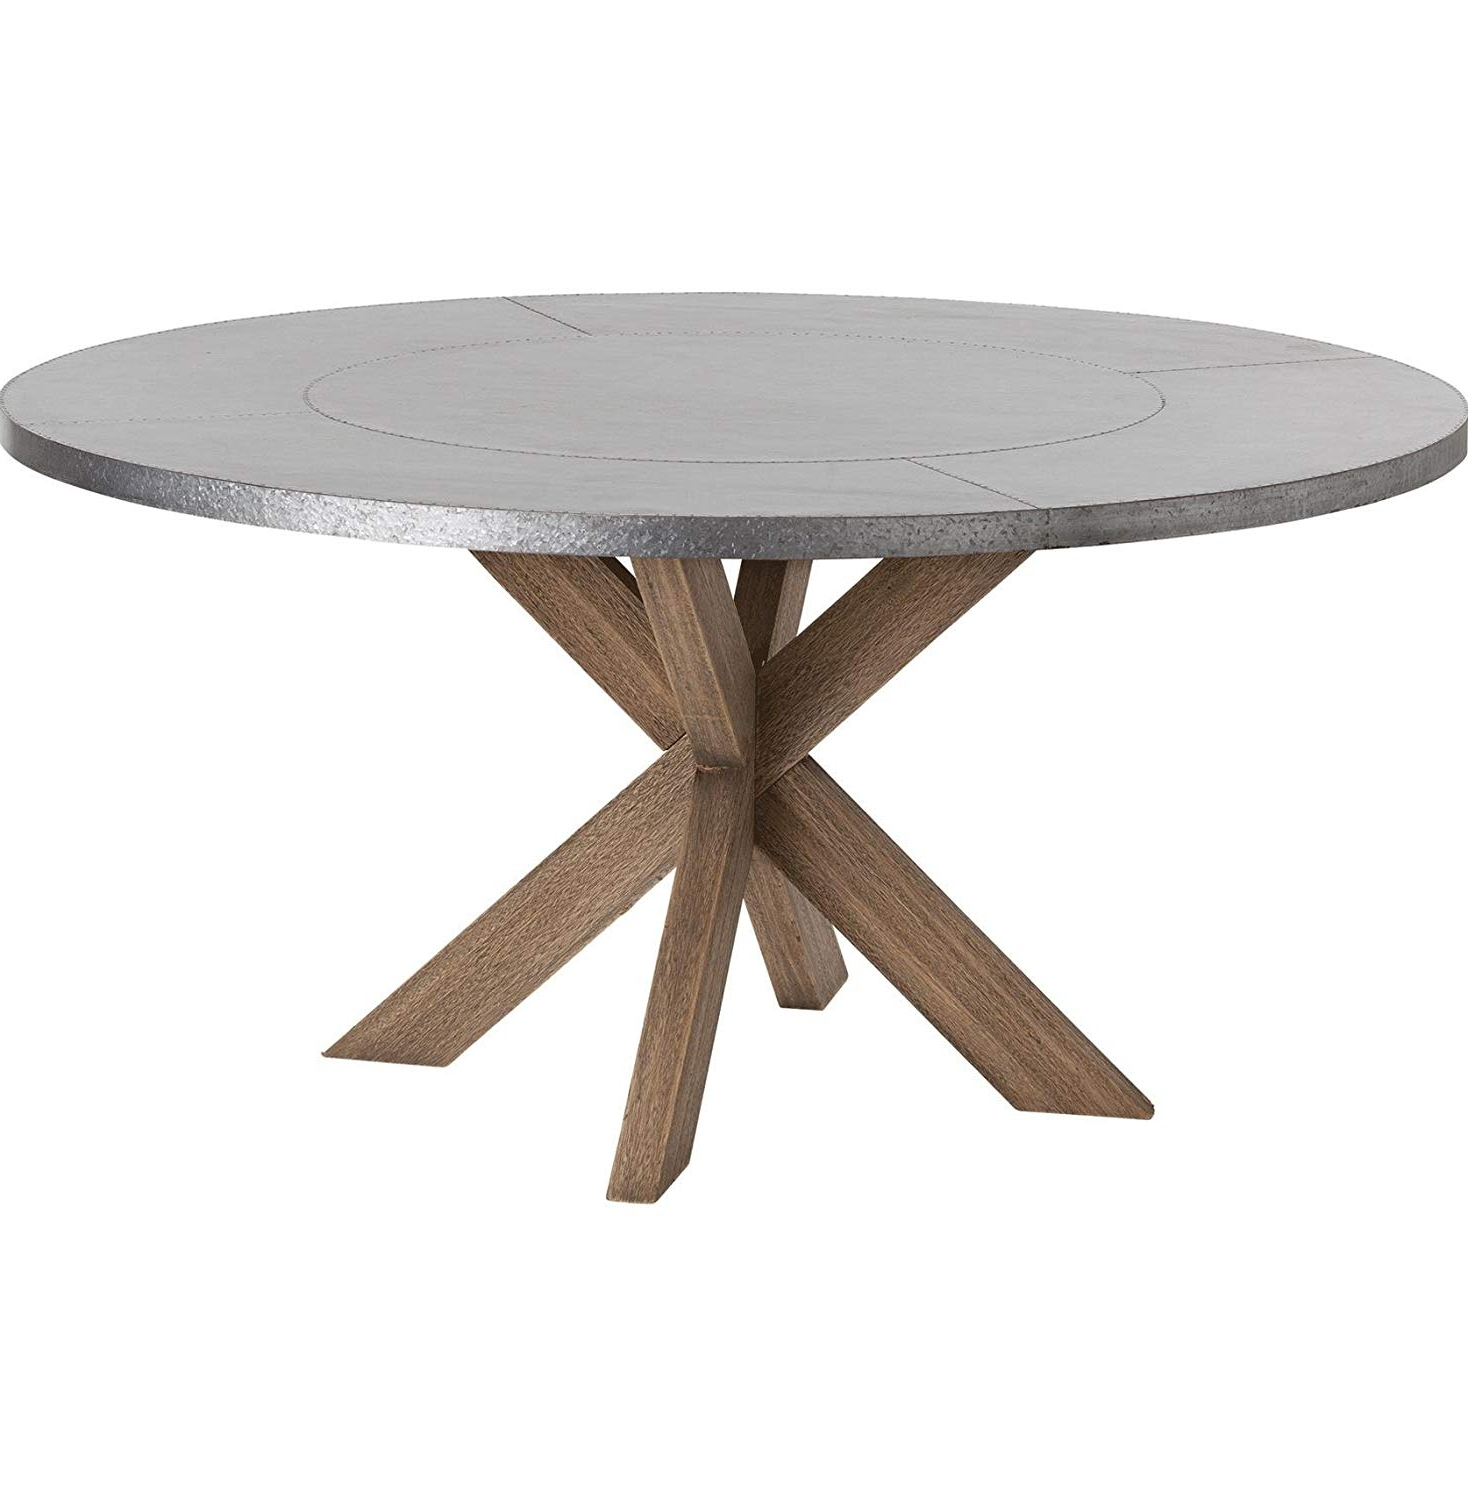 Natural Wood & Recycled Elm 87 Inch Dining Tables Regarding Most Popular Amazon – Kathy Kuo Home Halton Industrial Loft Galvanized Iron (View 13 of 25)